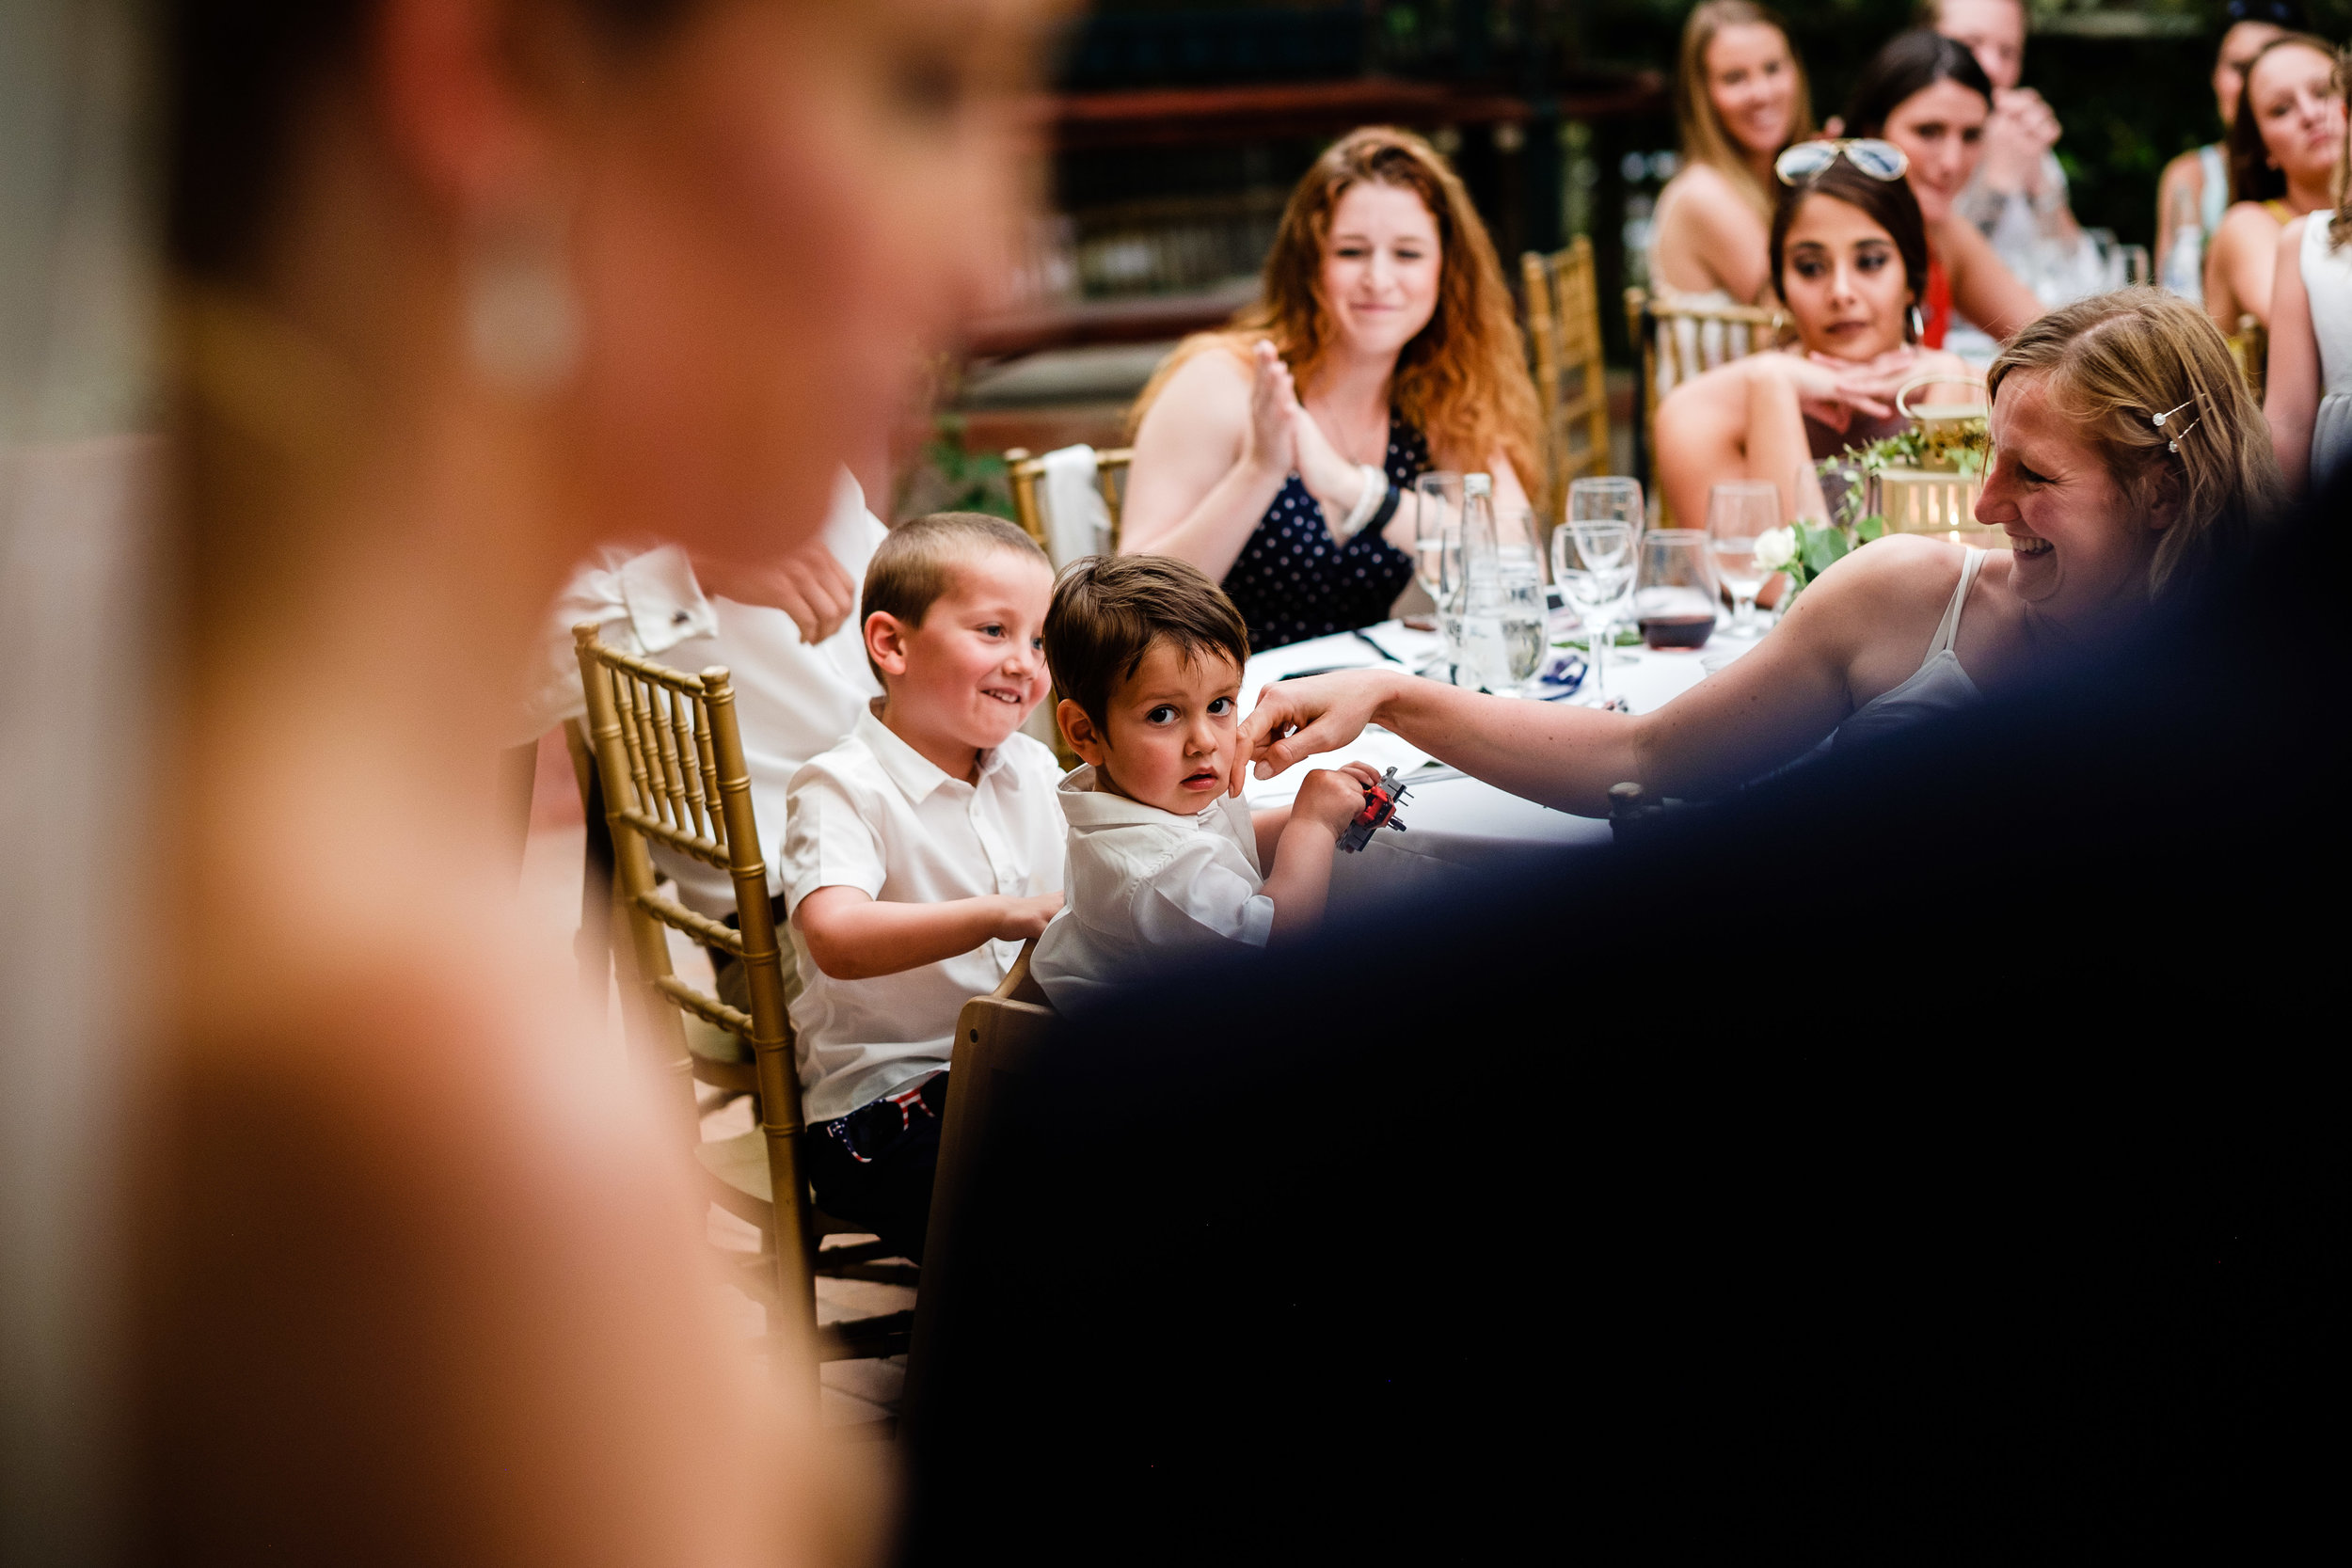 destination wedding photographer - Simon & Jordyn-398.jpg